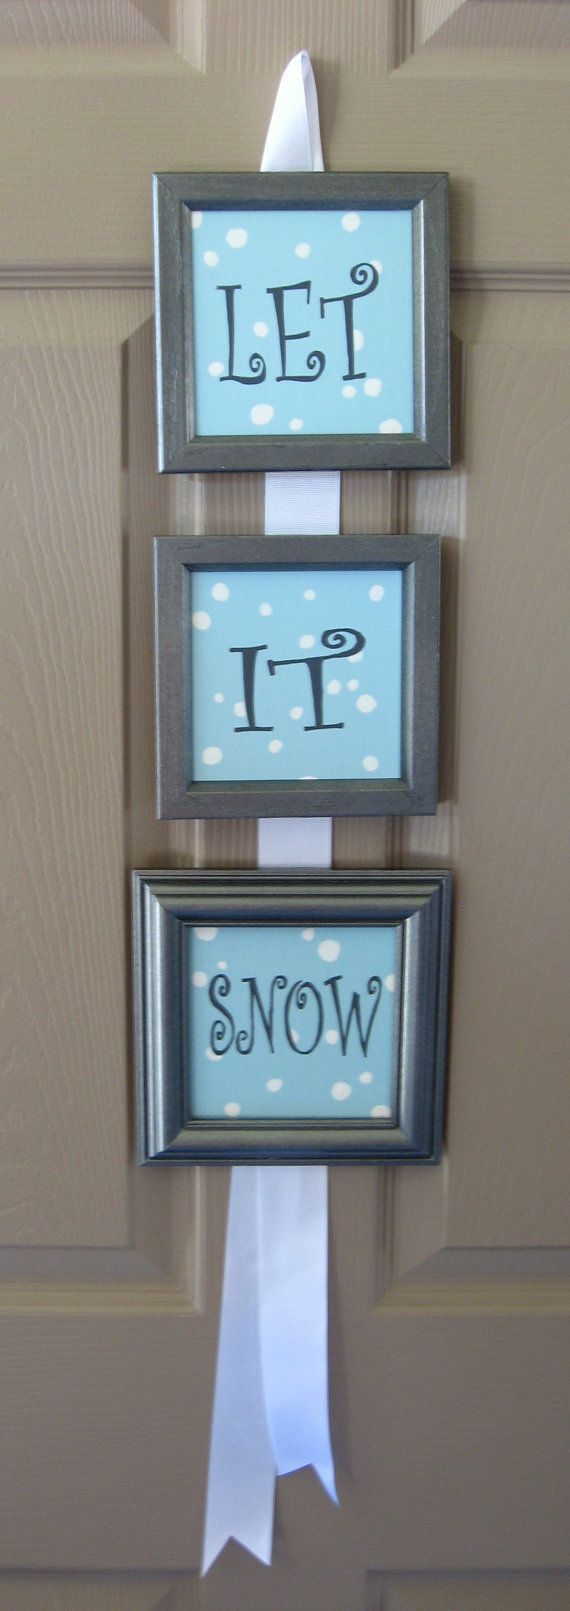 Vinyl lettering decals for crafts - Apply Vinyl Lettering Decals To Patterned Paper To Fill Picture Frames For A Festive Alternative To